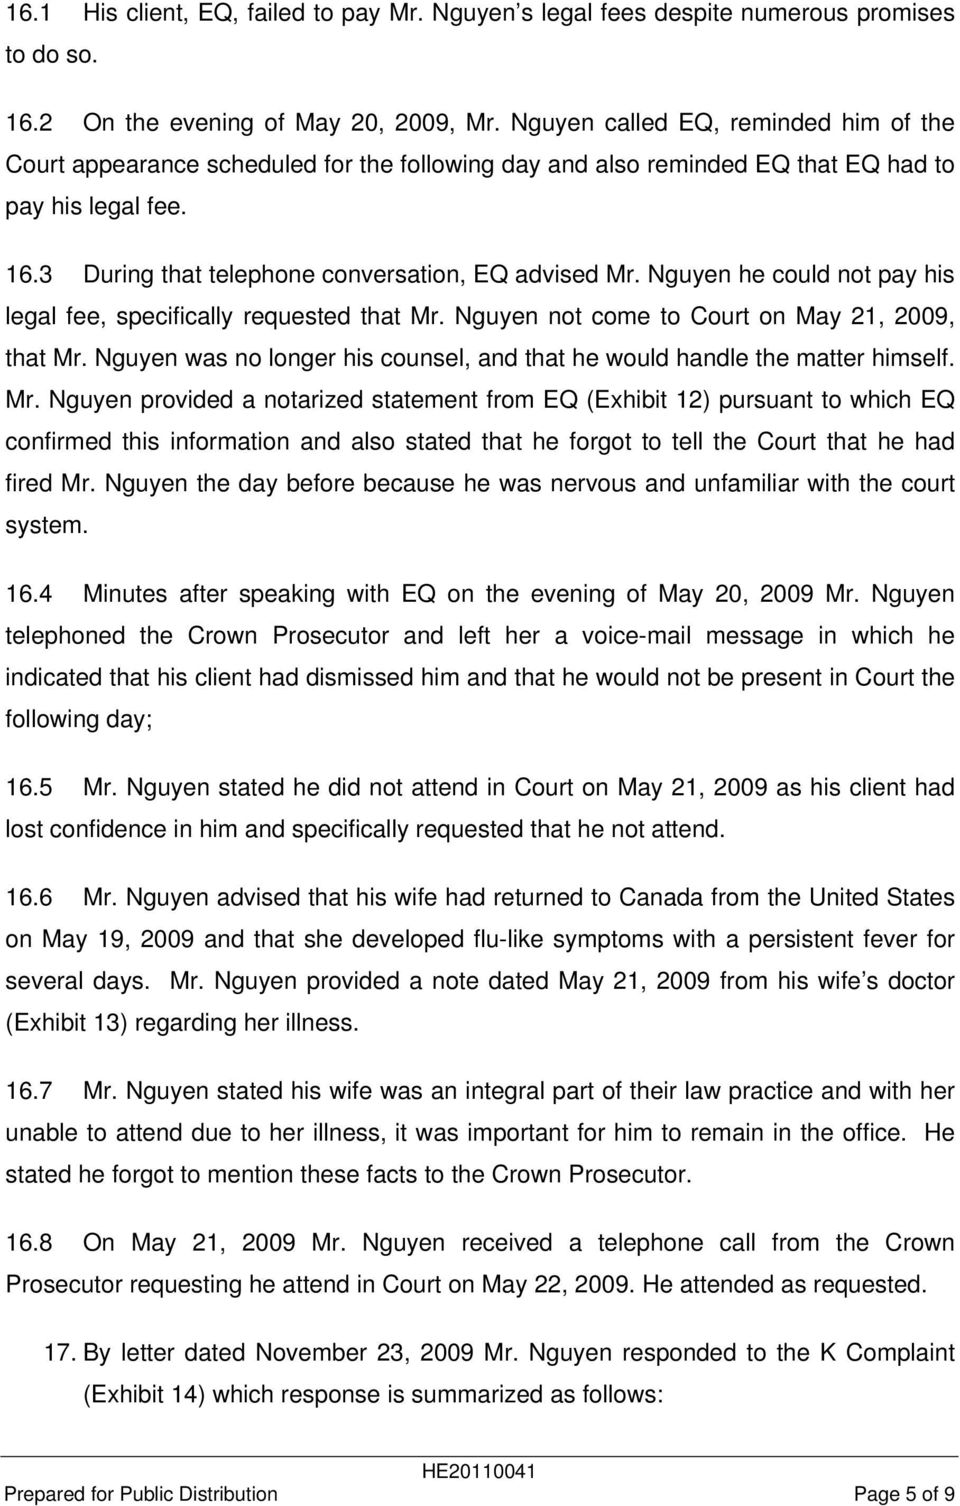 Nguyen he could not pay his legal fee, specifically requested that Mr. Nguyen not come to Court on May 21, 2009, that Mr. Nguyen was no longer his counsel, and that he would handle the matter himself.